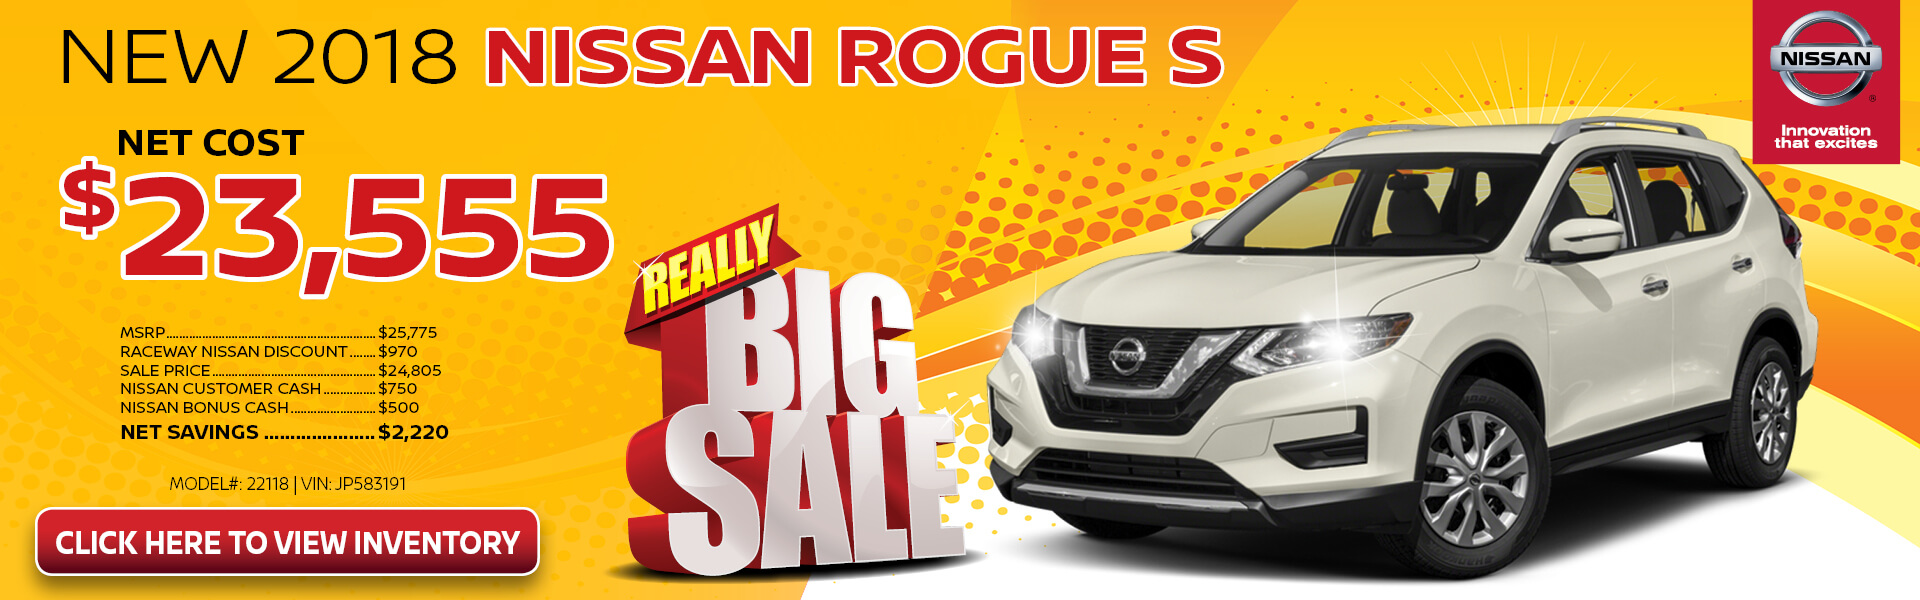 Nissan Rogue $23,555 Purchase